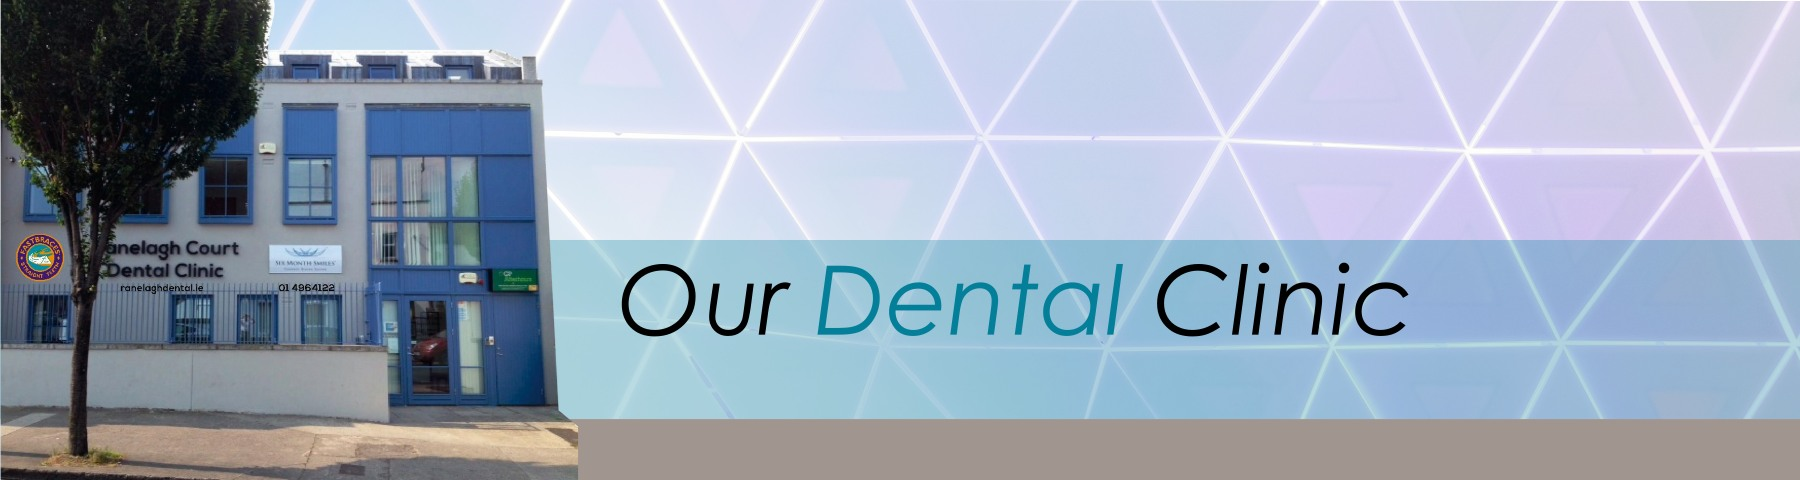 ranelagh dental clinic dublin our surgery